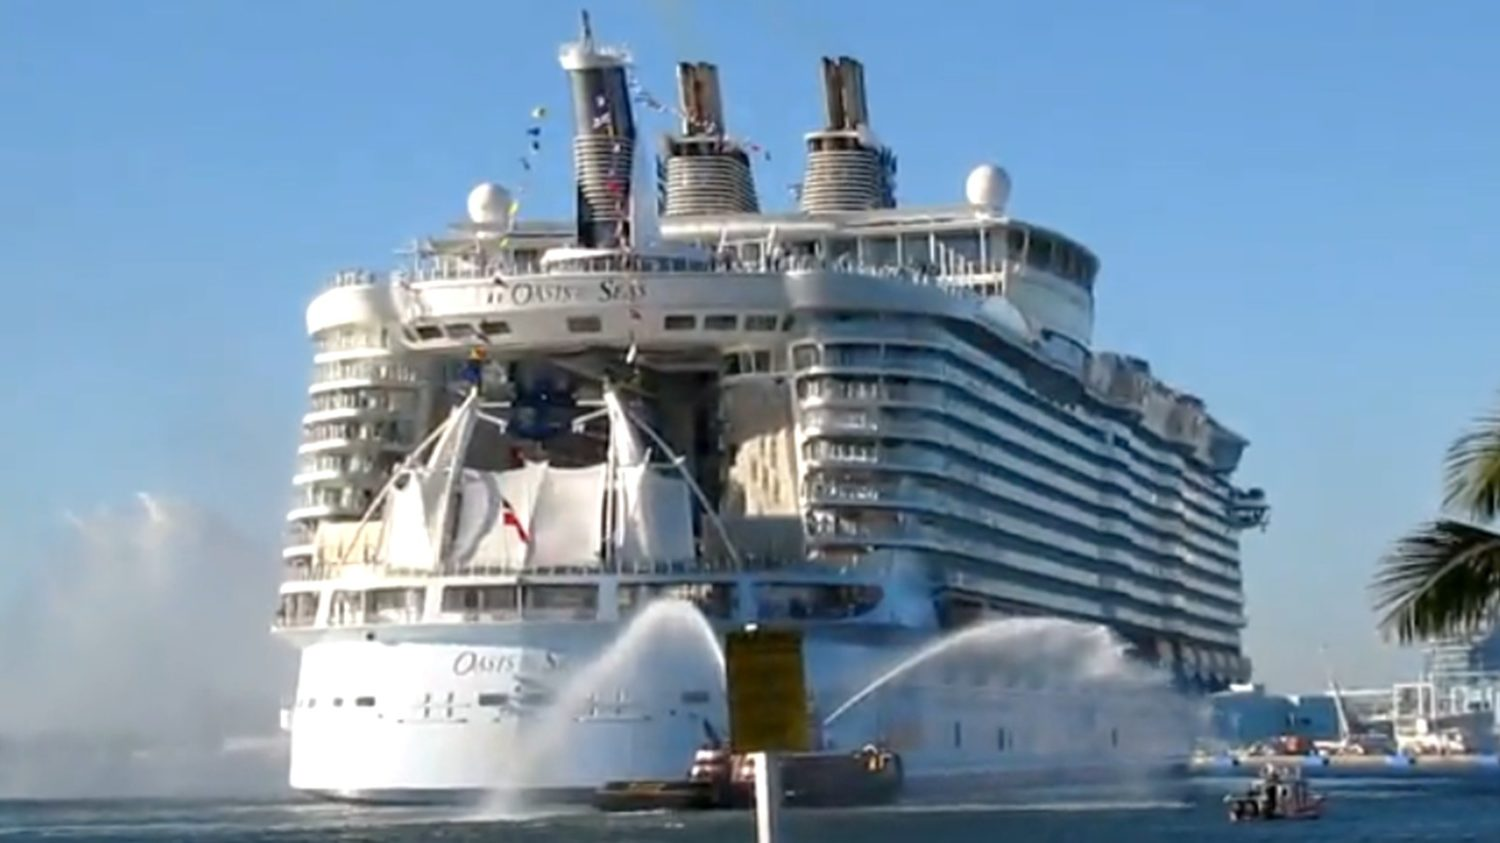 Oasis of the Seas to Sail 3 Cruises to Europe in 2014